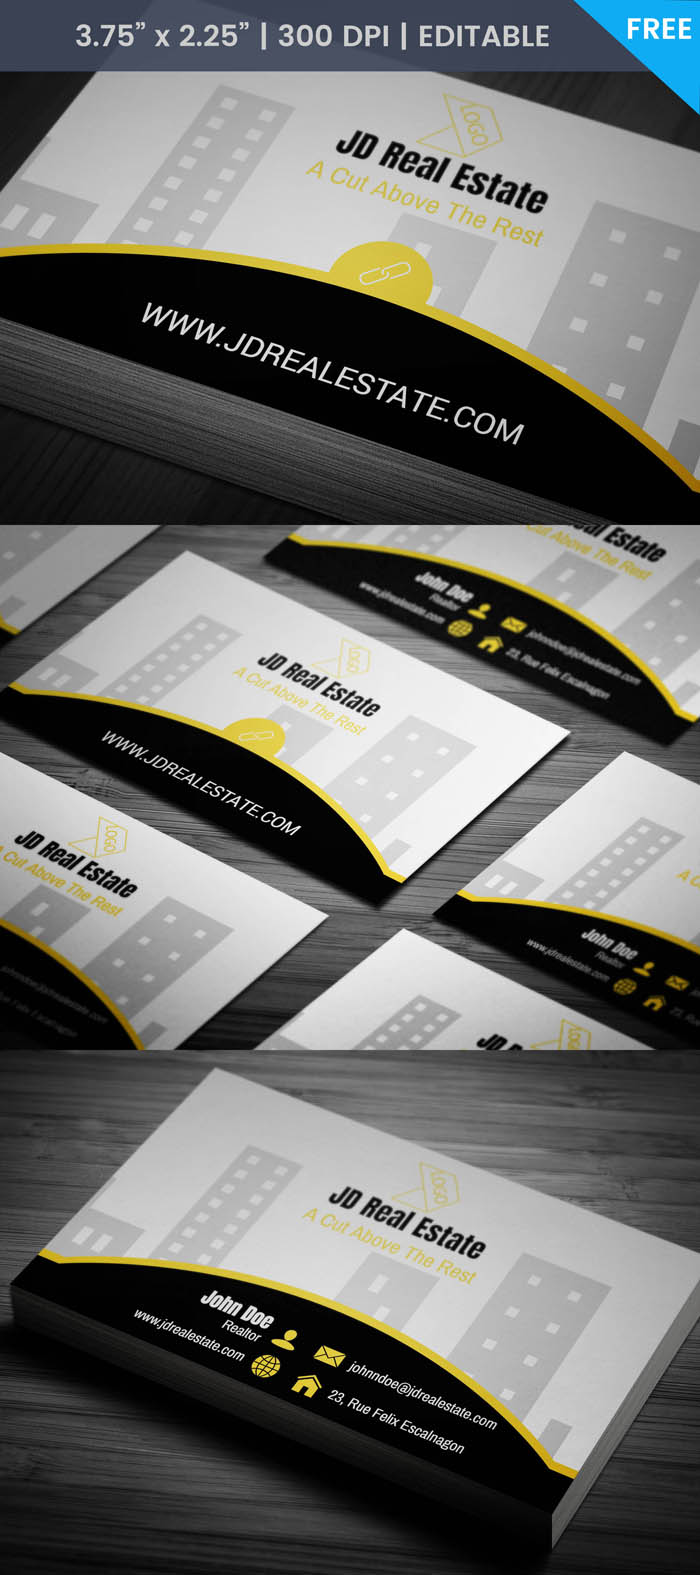 Real Estate Salesperson Business Card - Full Preview